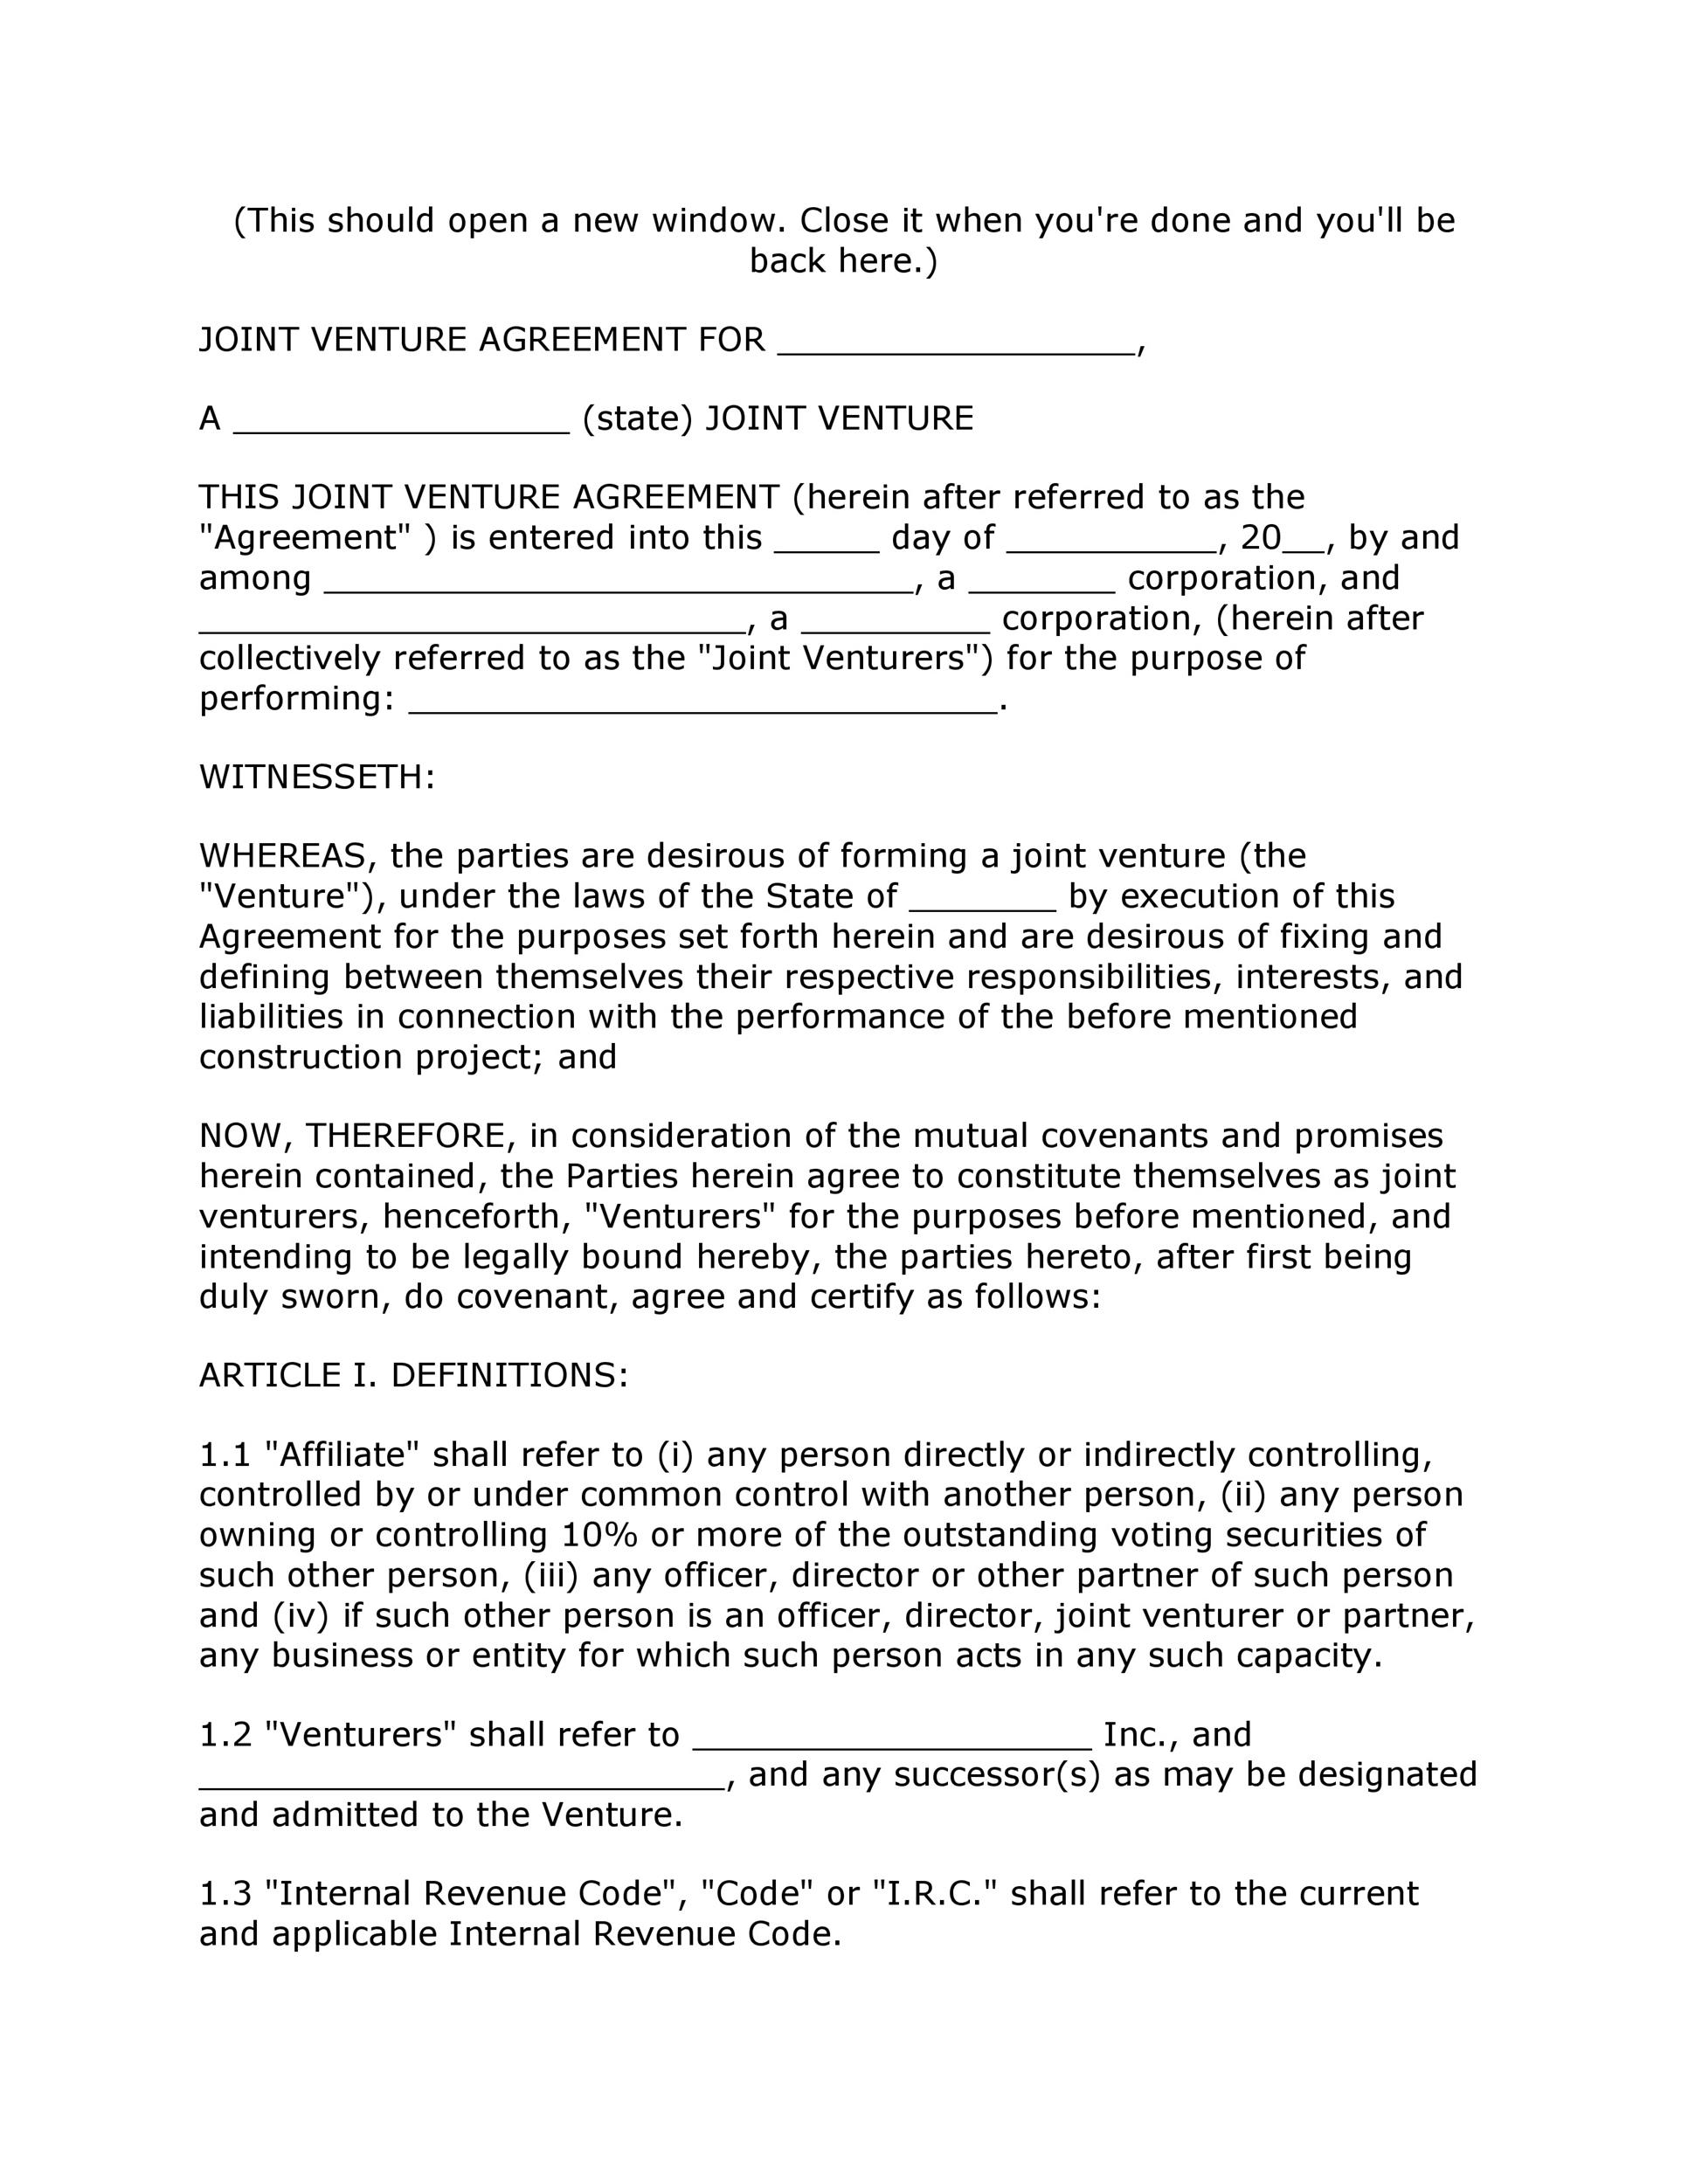 Free Joint Venture Agreement Template 04